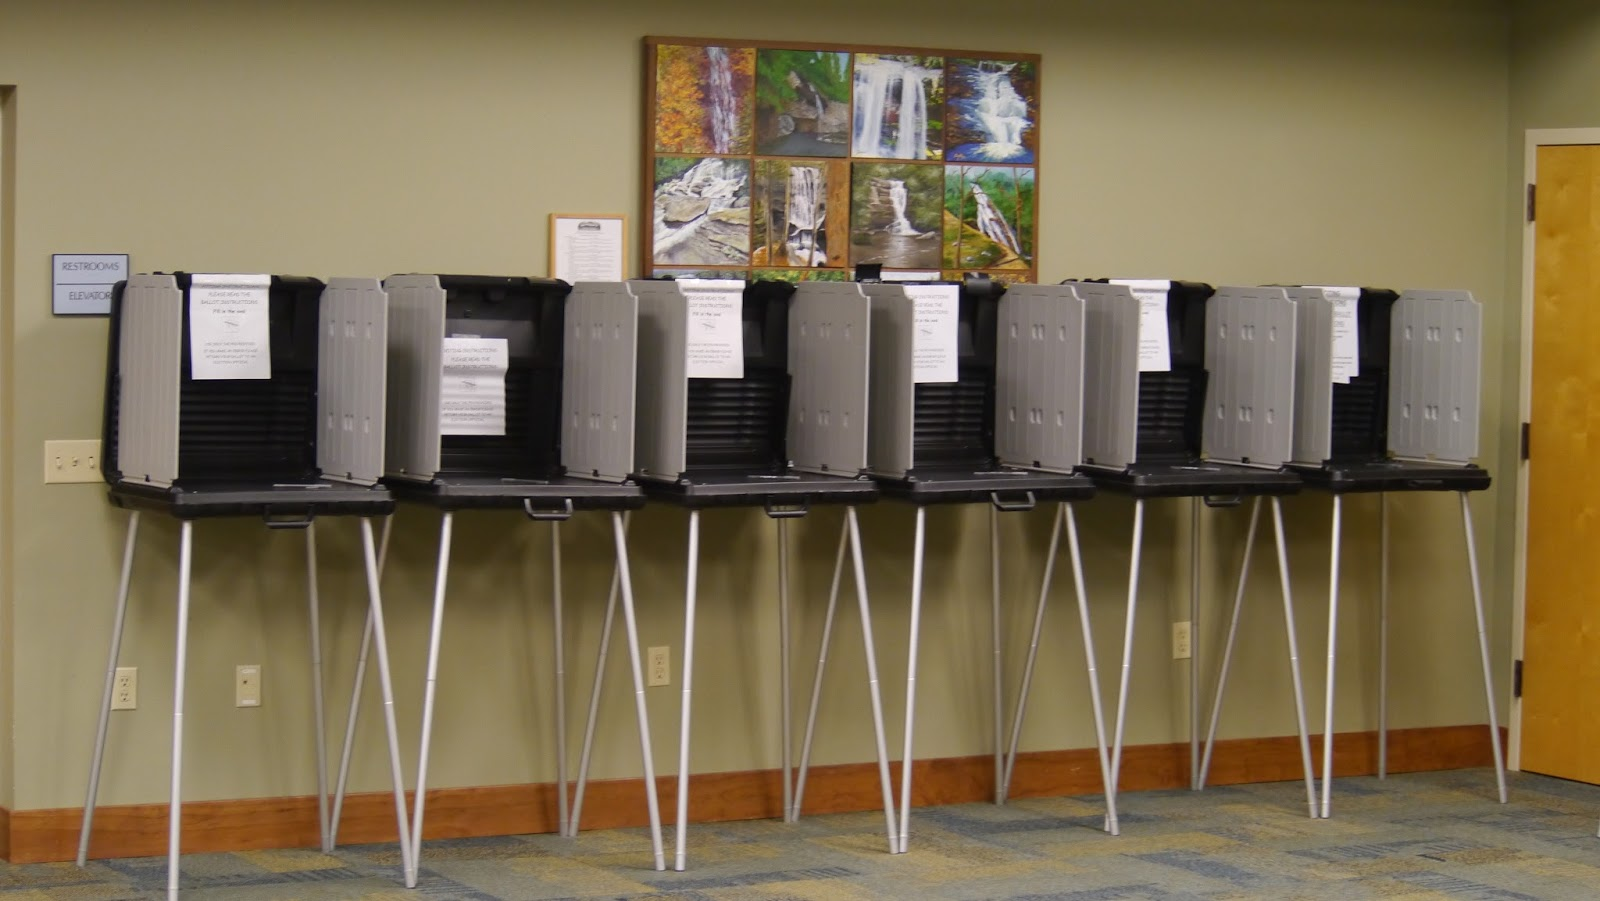 Voting Booths at the North Franklin Precinct